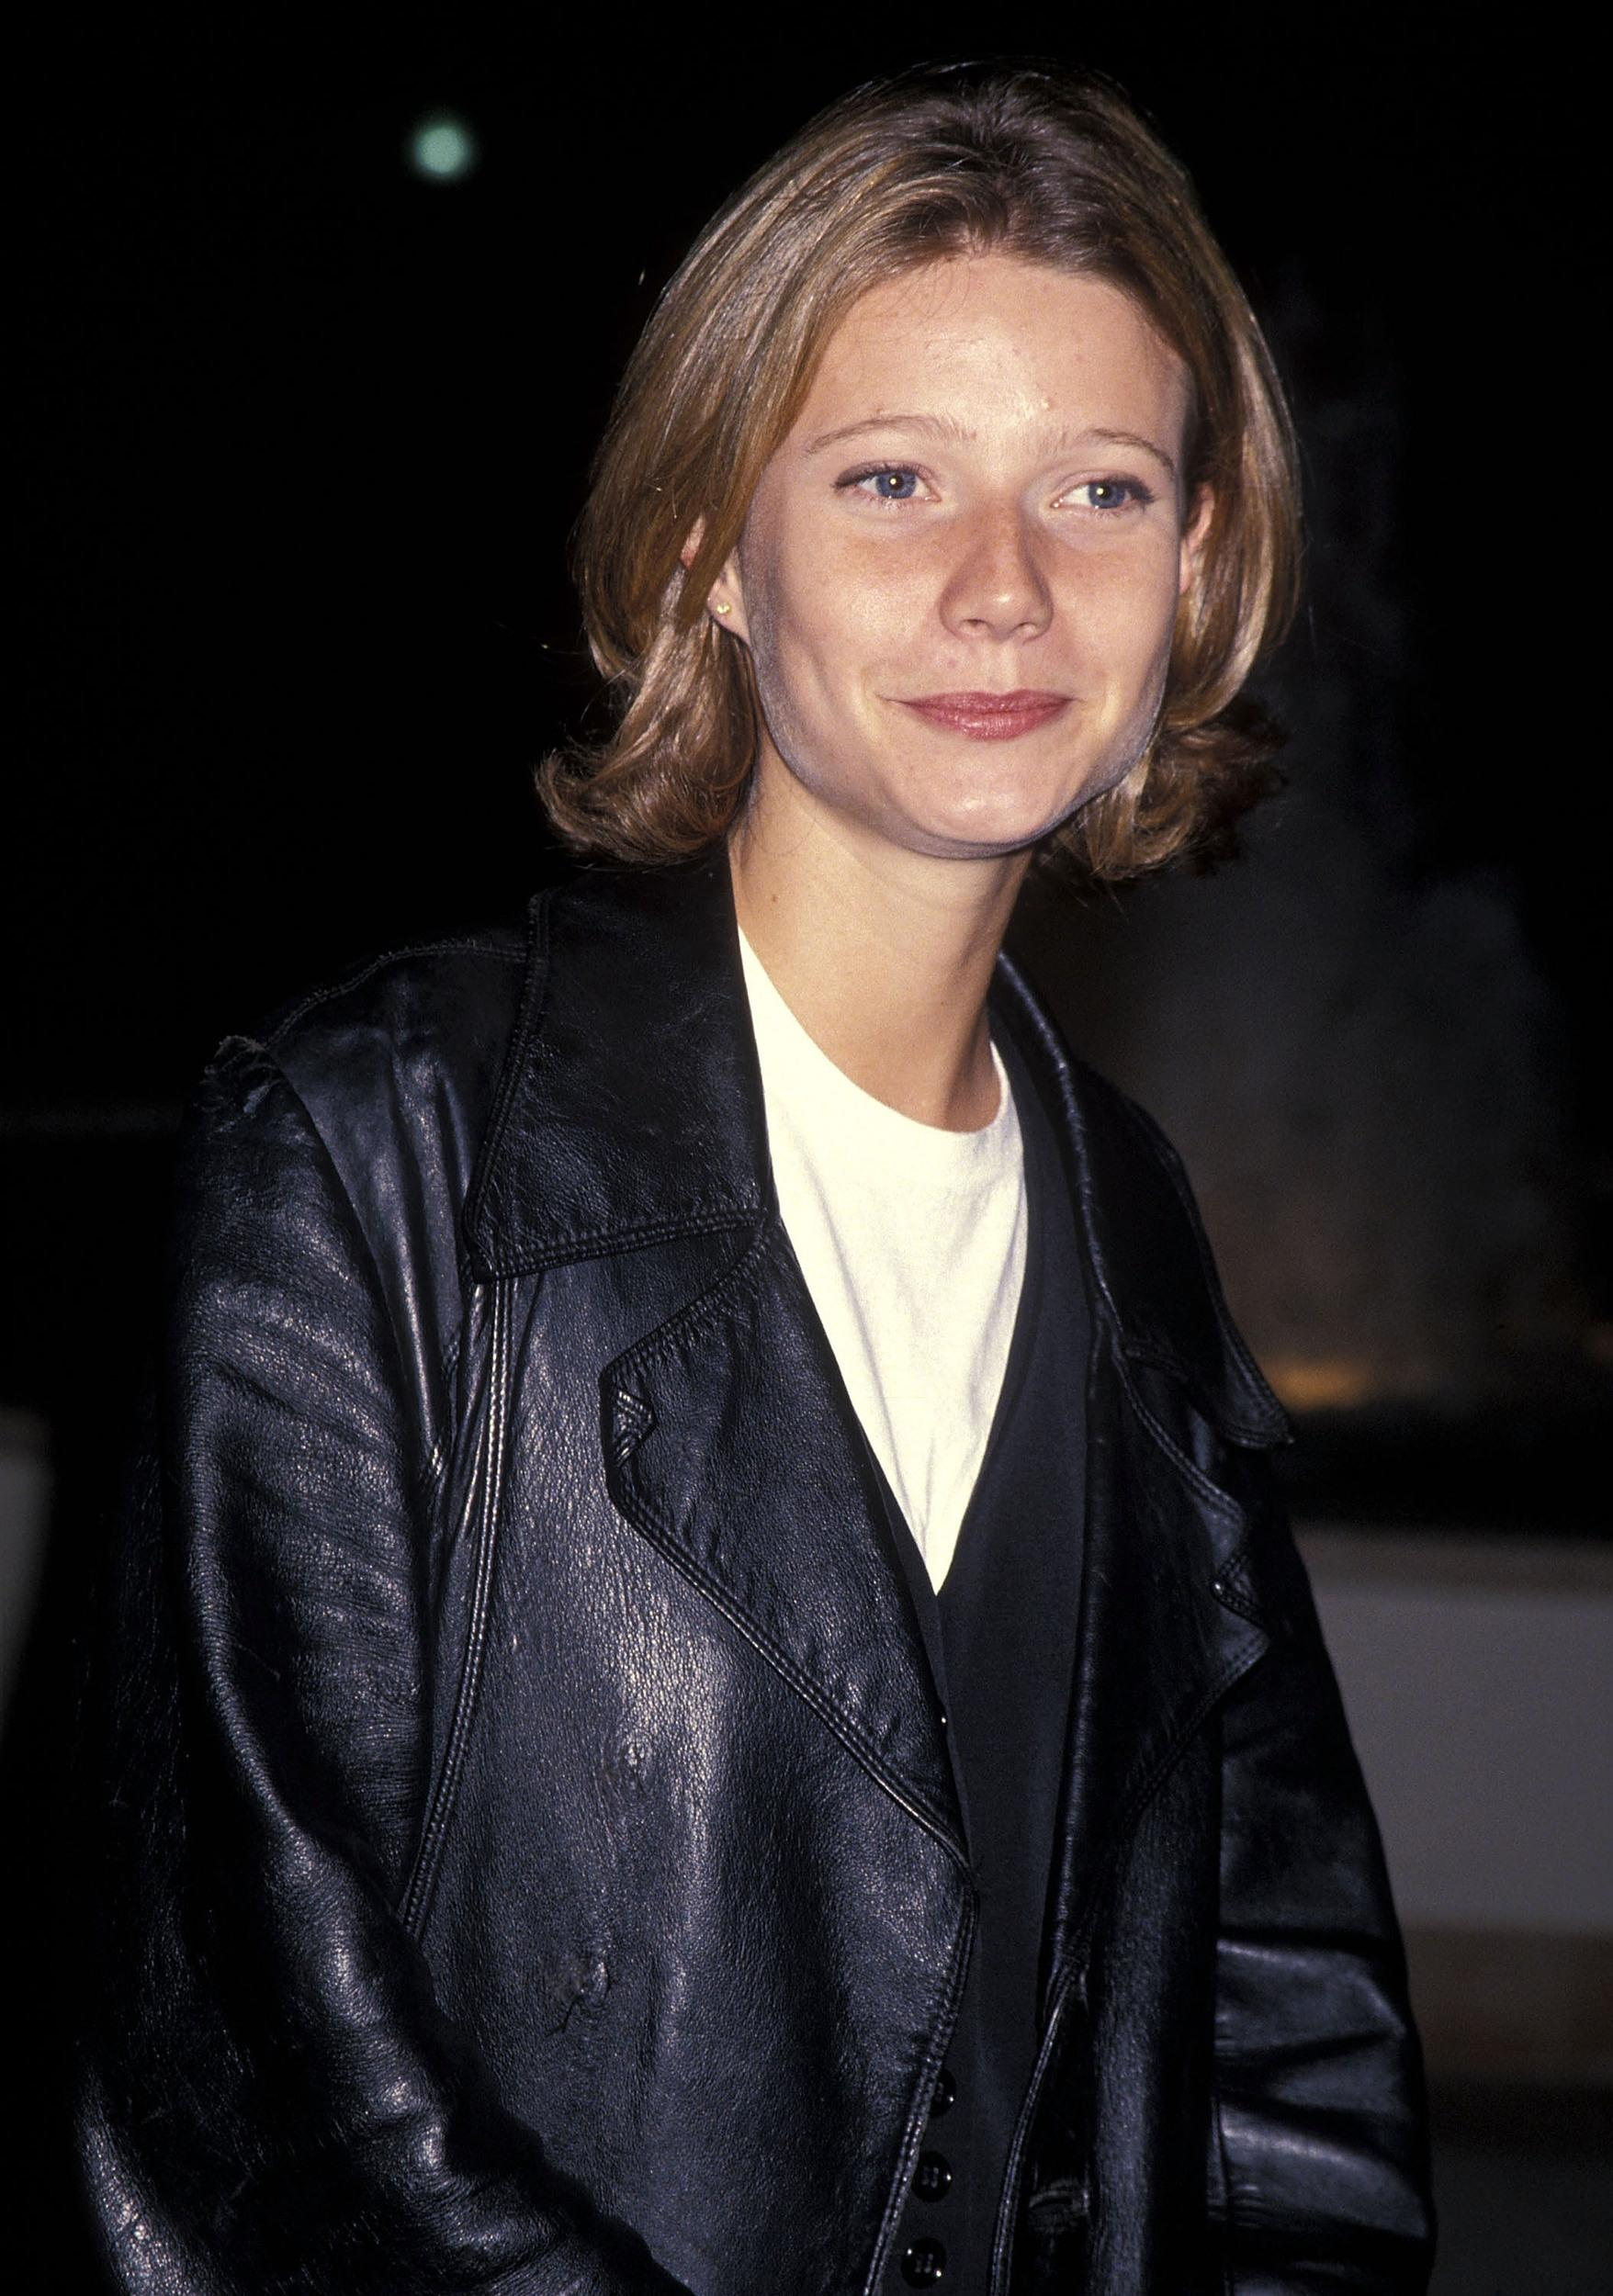 Actress Gwyneth Paltrow attends the 'Flesh & Bone' Hollywood Premiere on November 4, 1993 at Paramount Theatre in Hollywood, California. (Photo by Ron Galella, Ltd./WireImage)